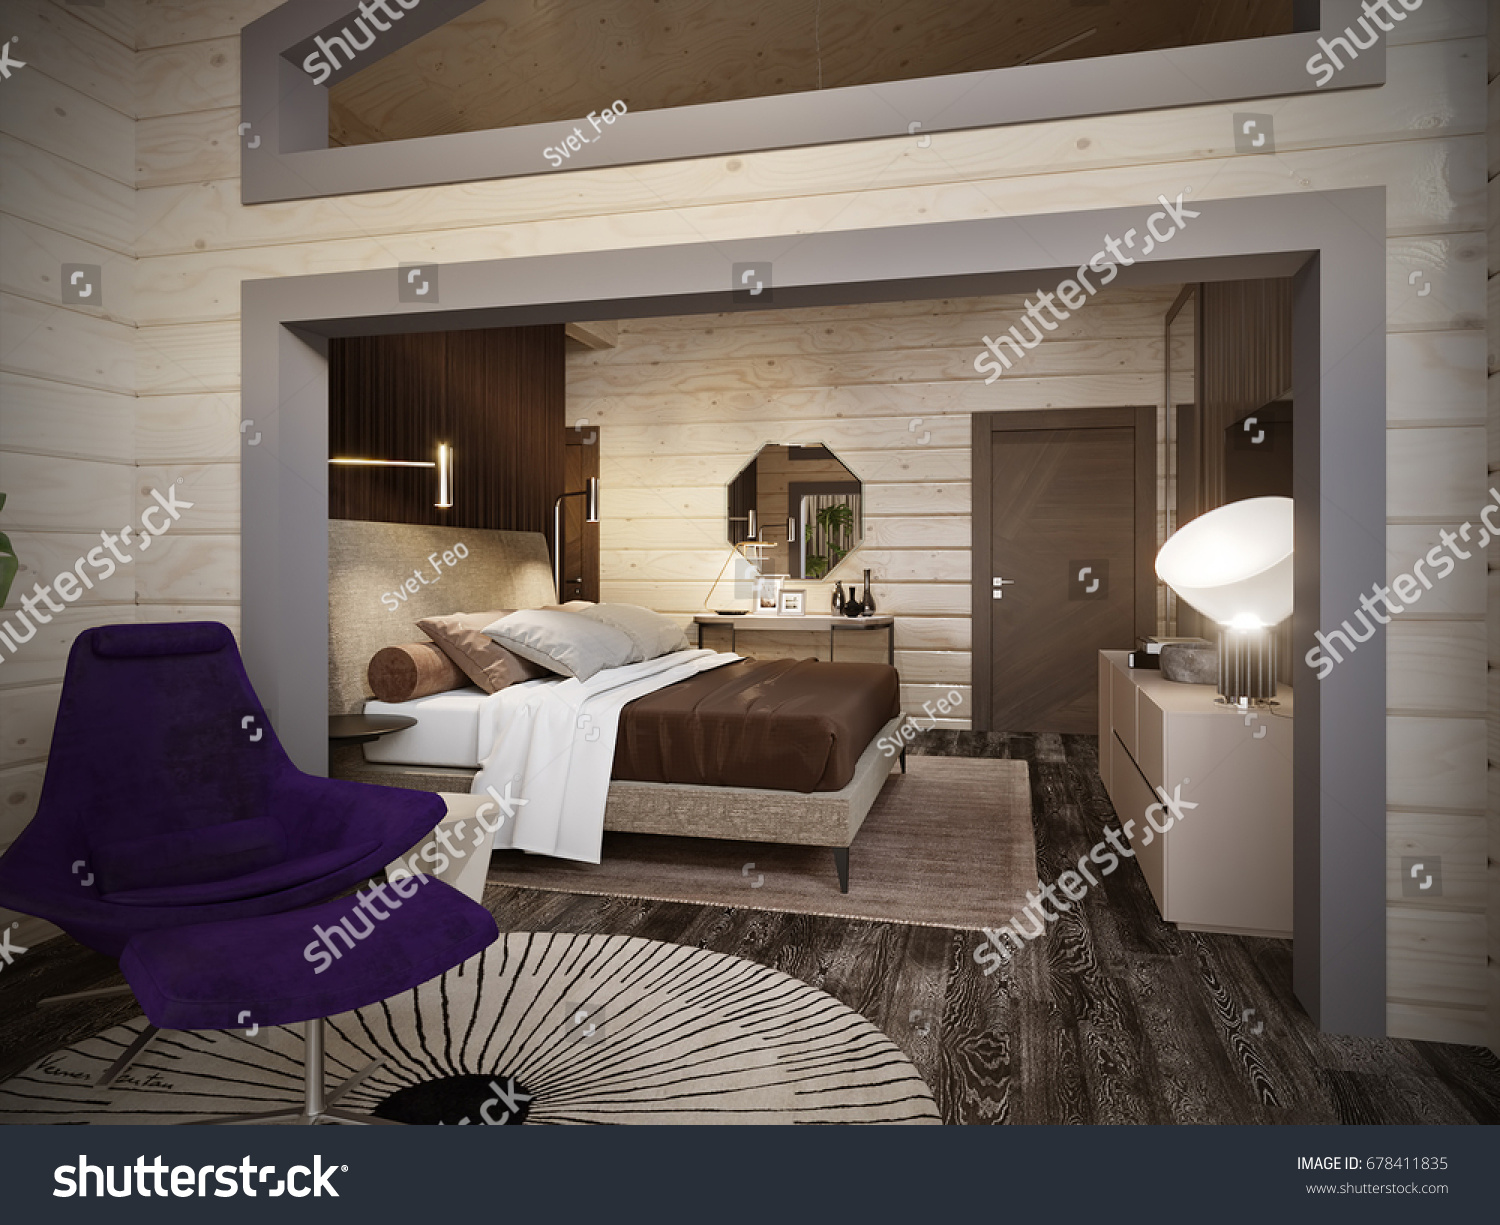 urban contemporary furniture. Urban Contemporary Modern Classic Traditional Hotel Bedroom Interior Design In Wooden House With Blockhouse Walls, Furniture